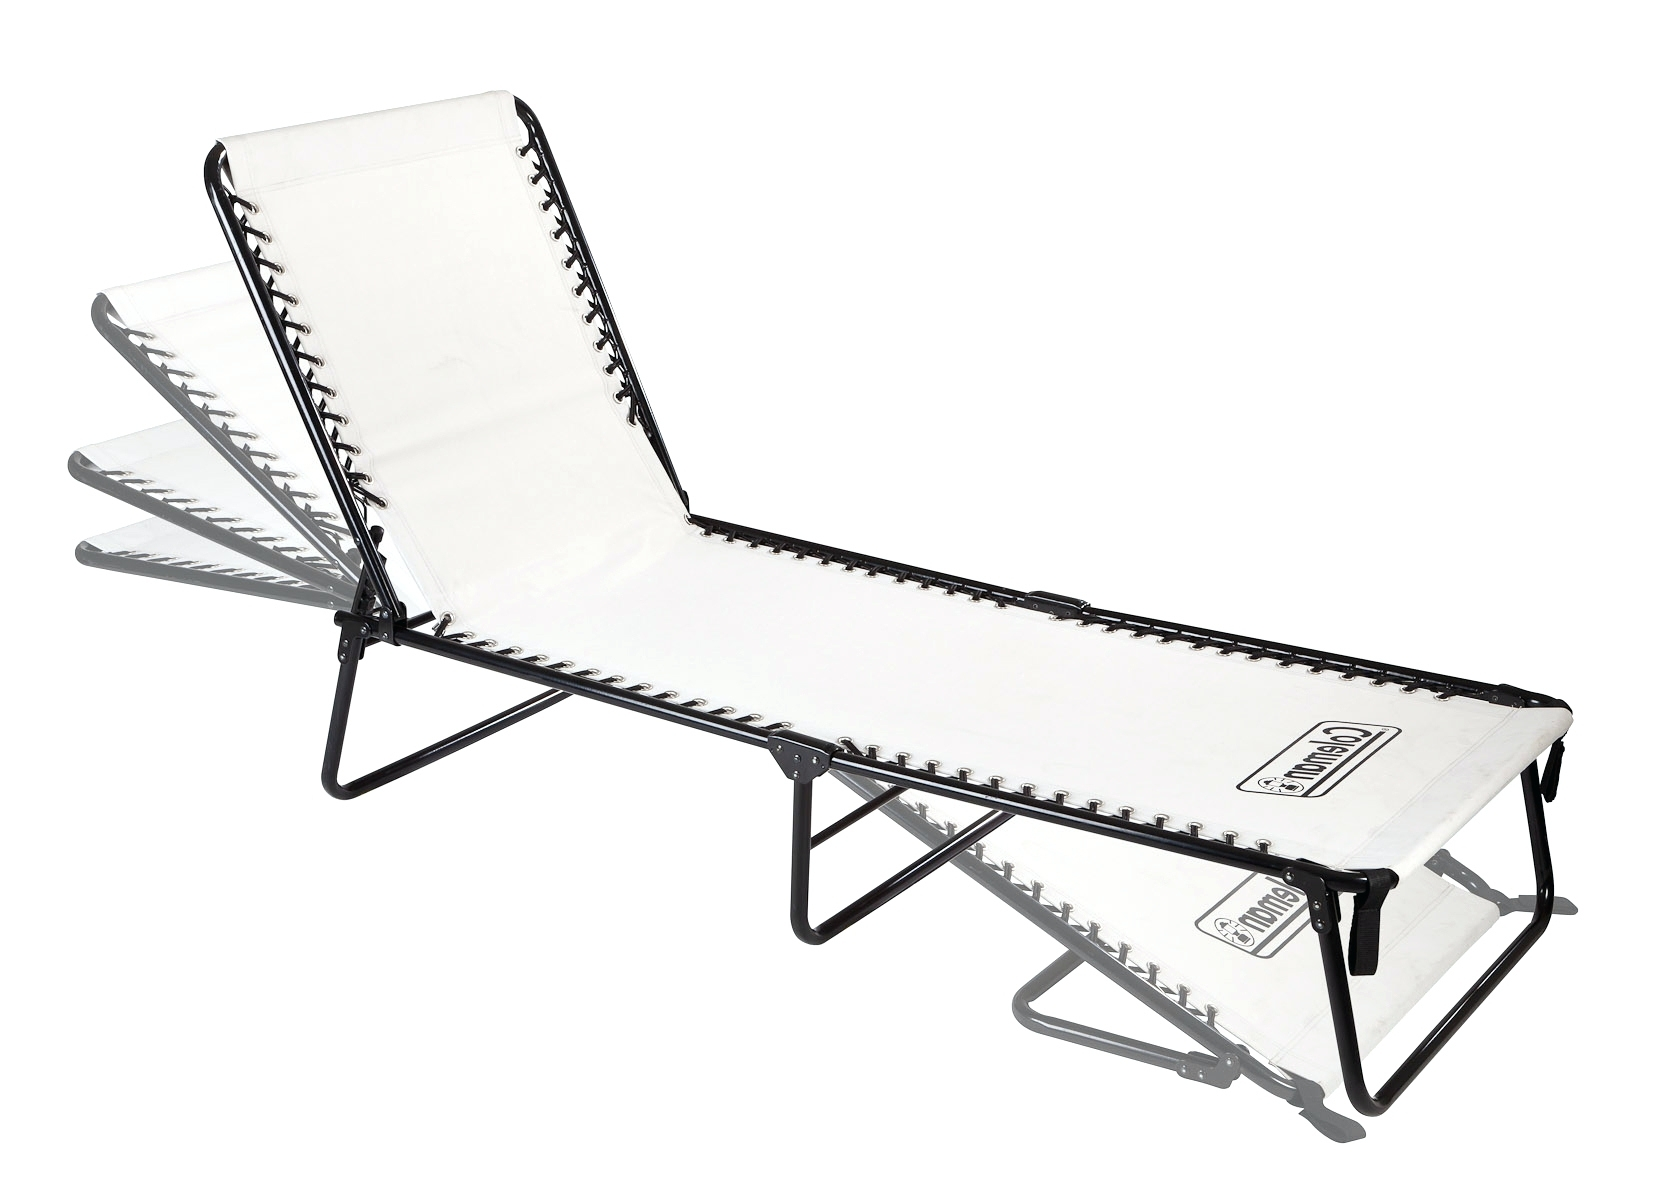 Portable Outdoor Chaise Lounge Chairs Intended For 2018 Portable Chaise Lounge Chairs Outdoor • Lounge Chairs Ideas (View 3 of 15)